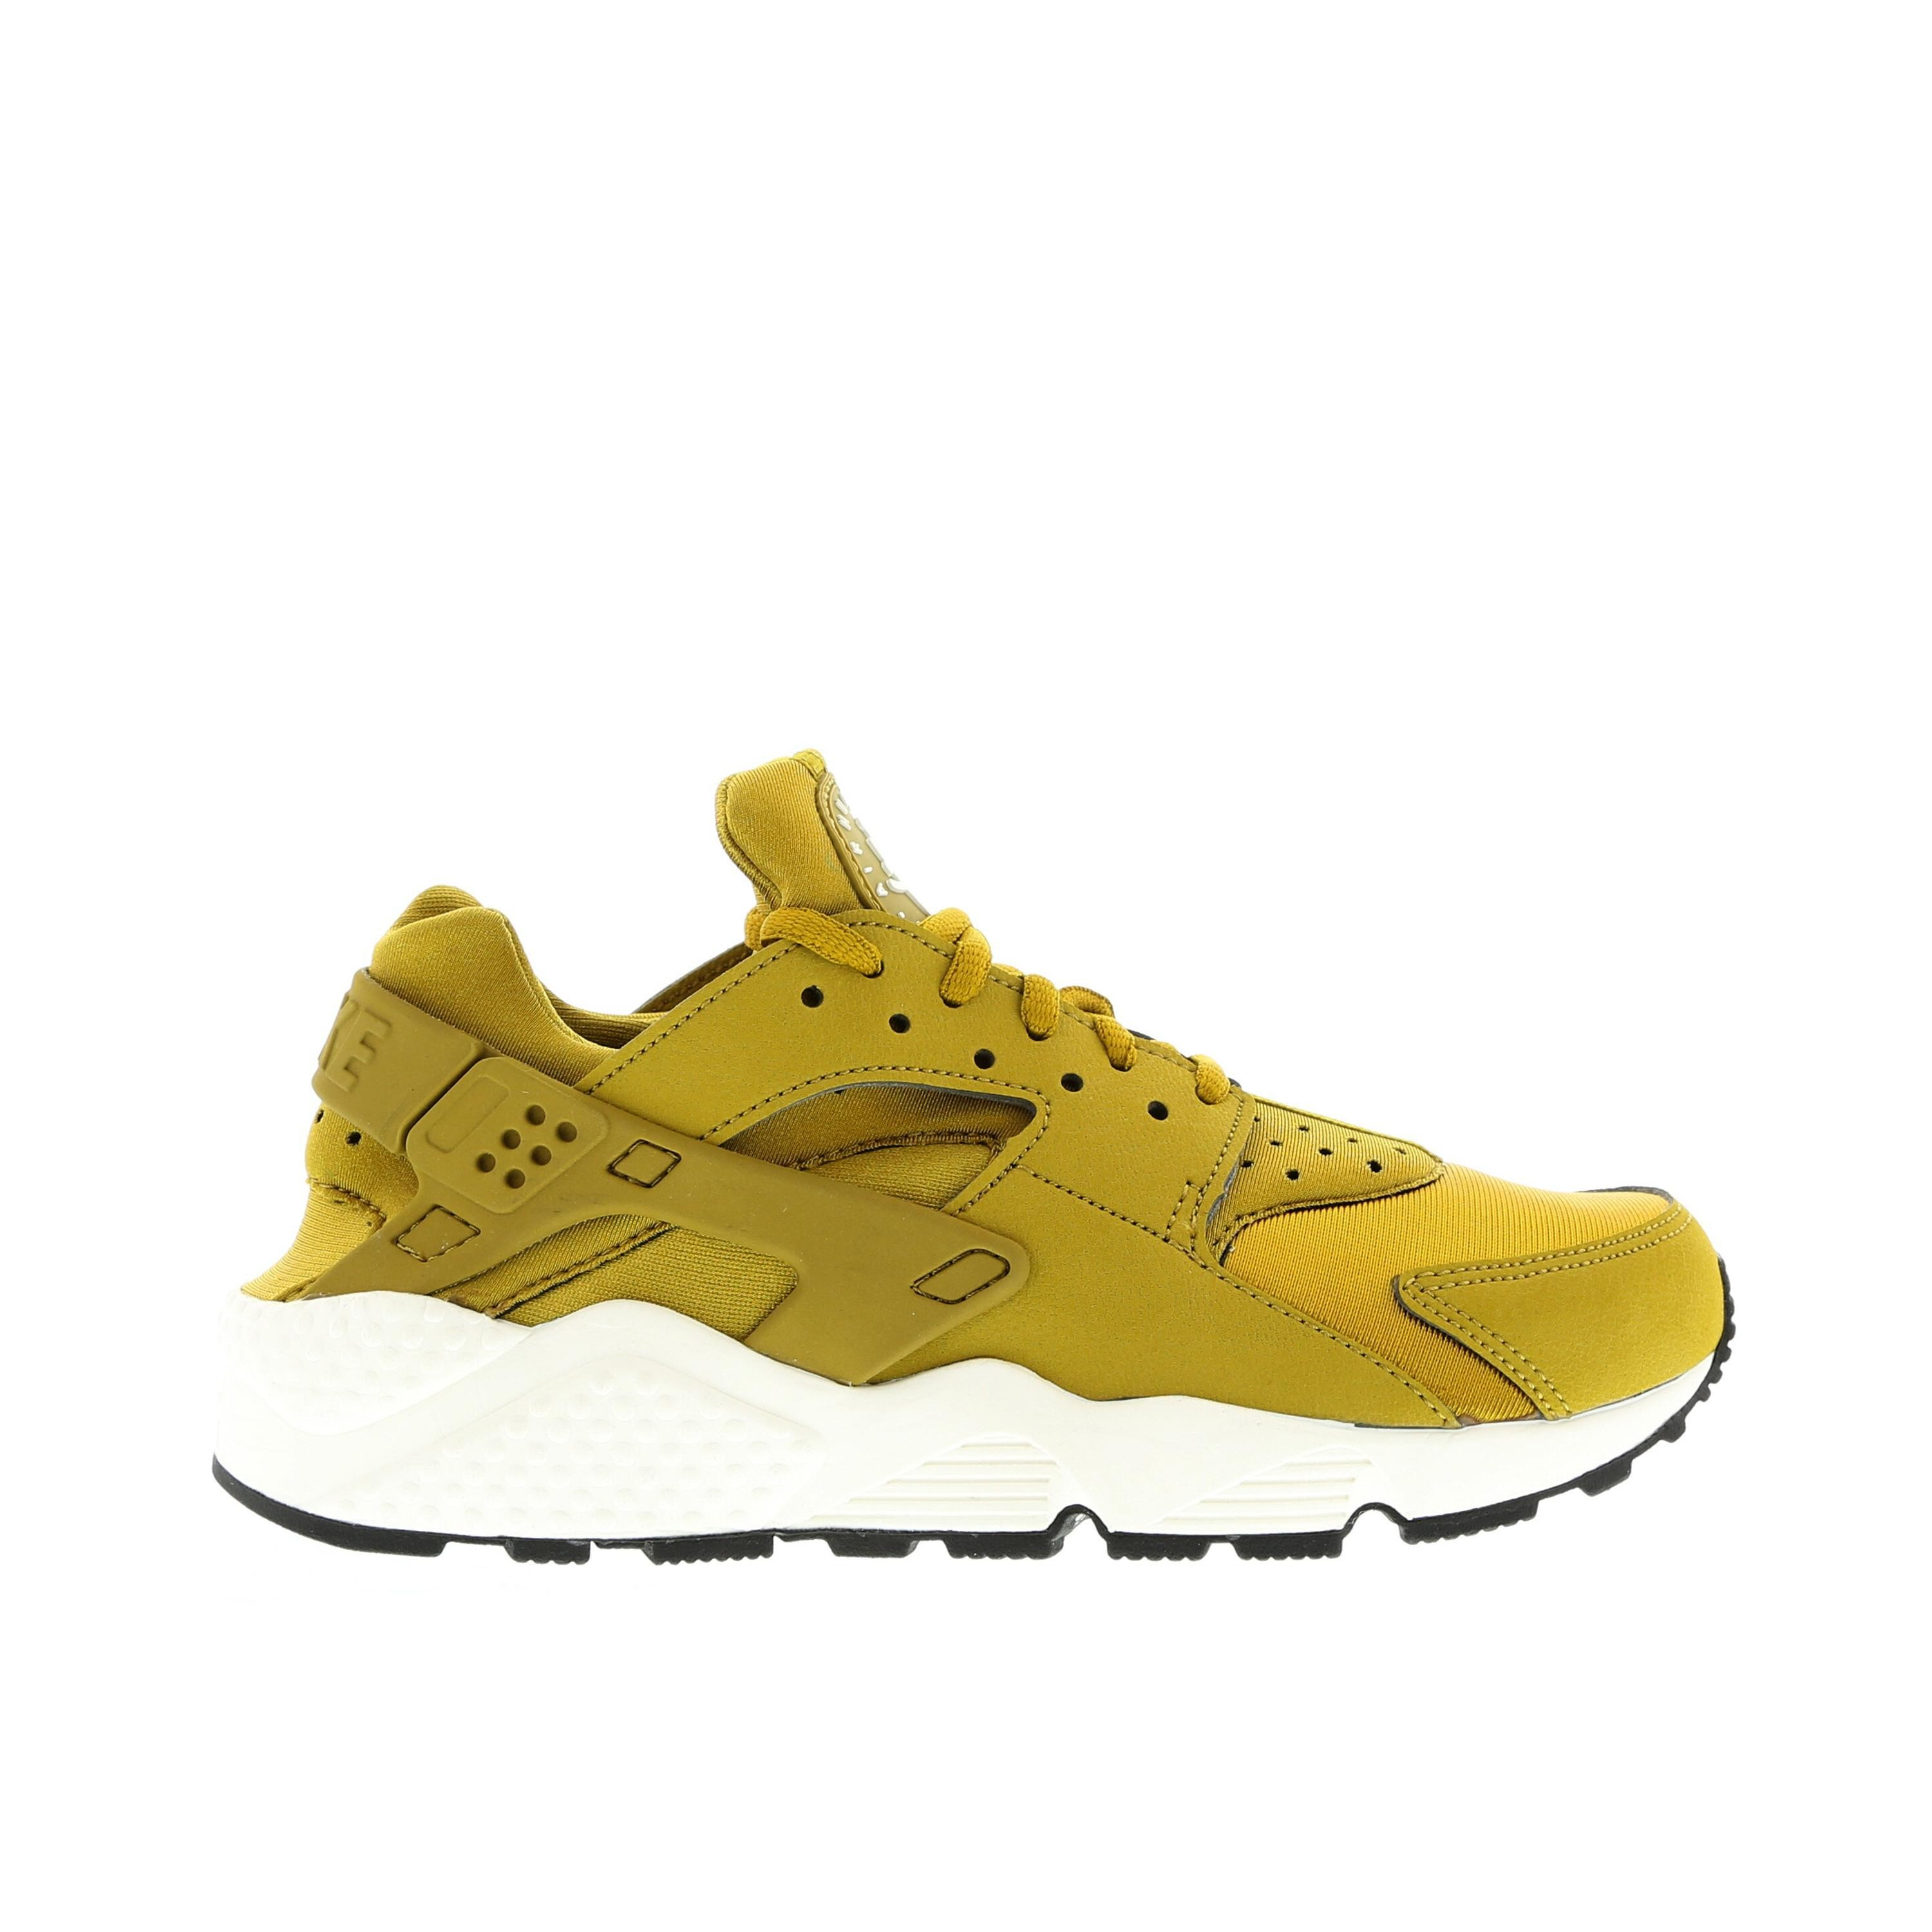 bfa4fb49f0d9 ... spain nike air huarache 634835 700 bronzine bronzine sail mens shoes  e1b45 3851f